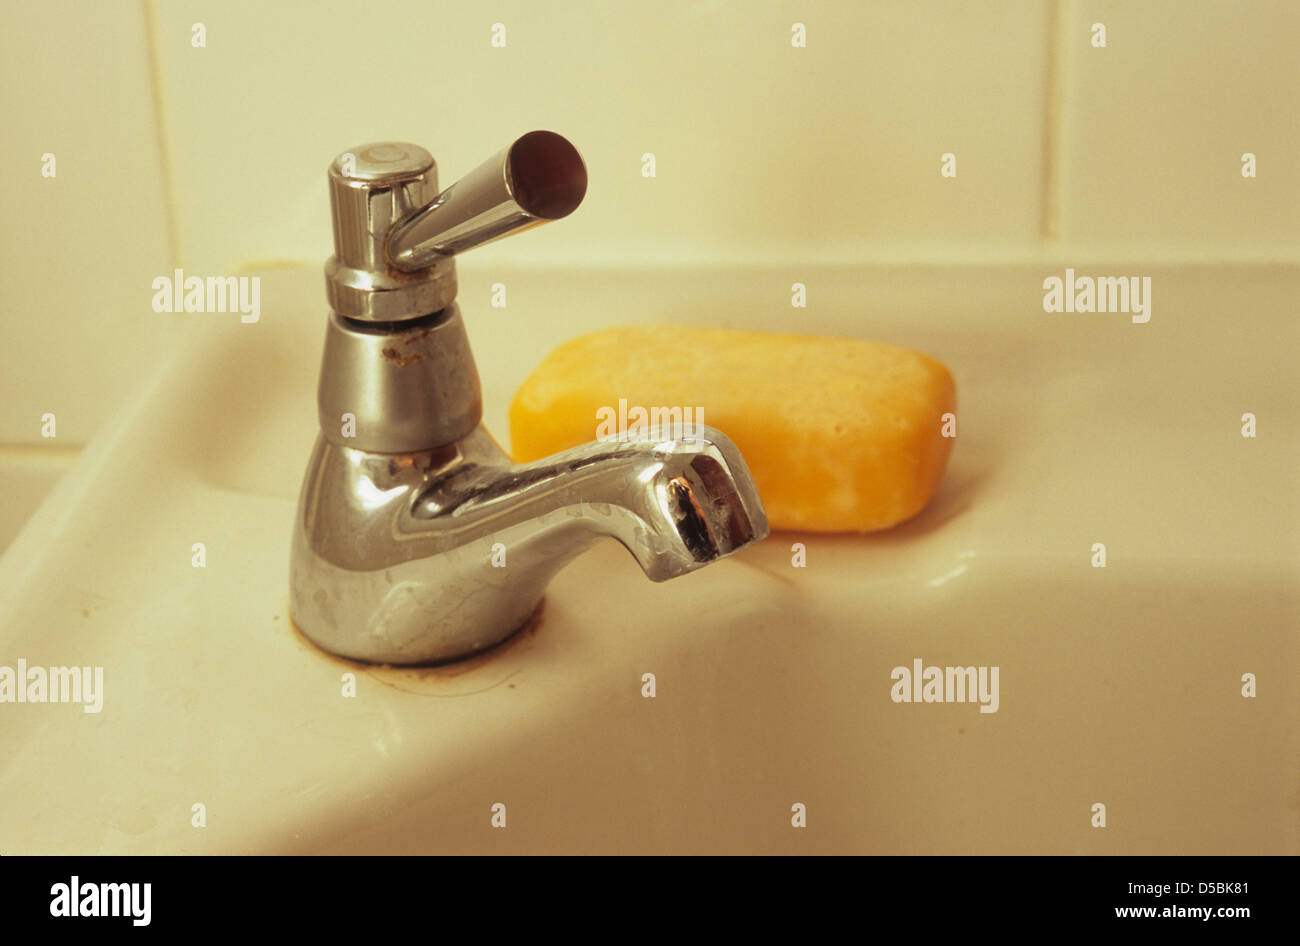 Detail of bathroom sink with tap with lever handle and bar of orange ...